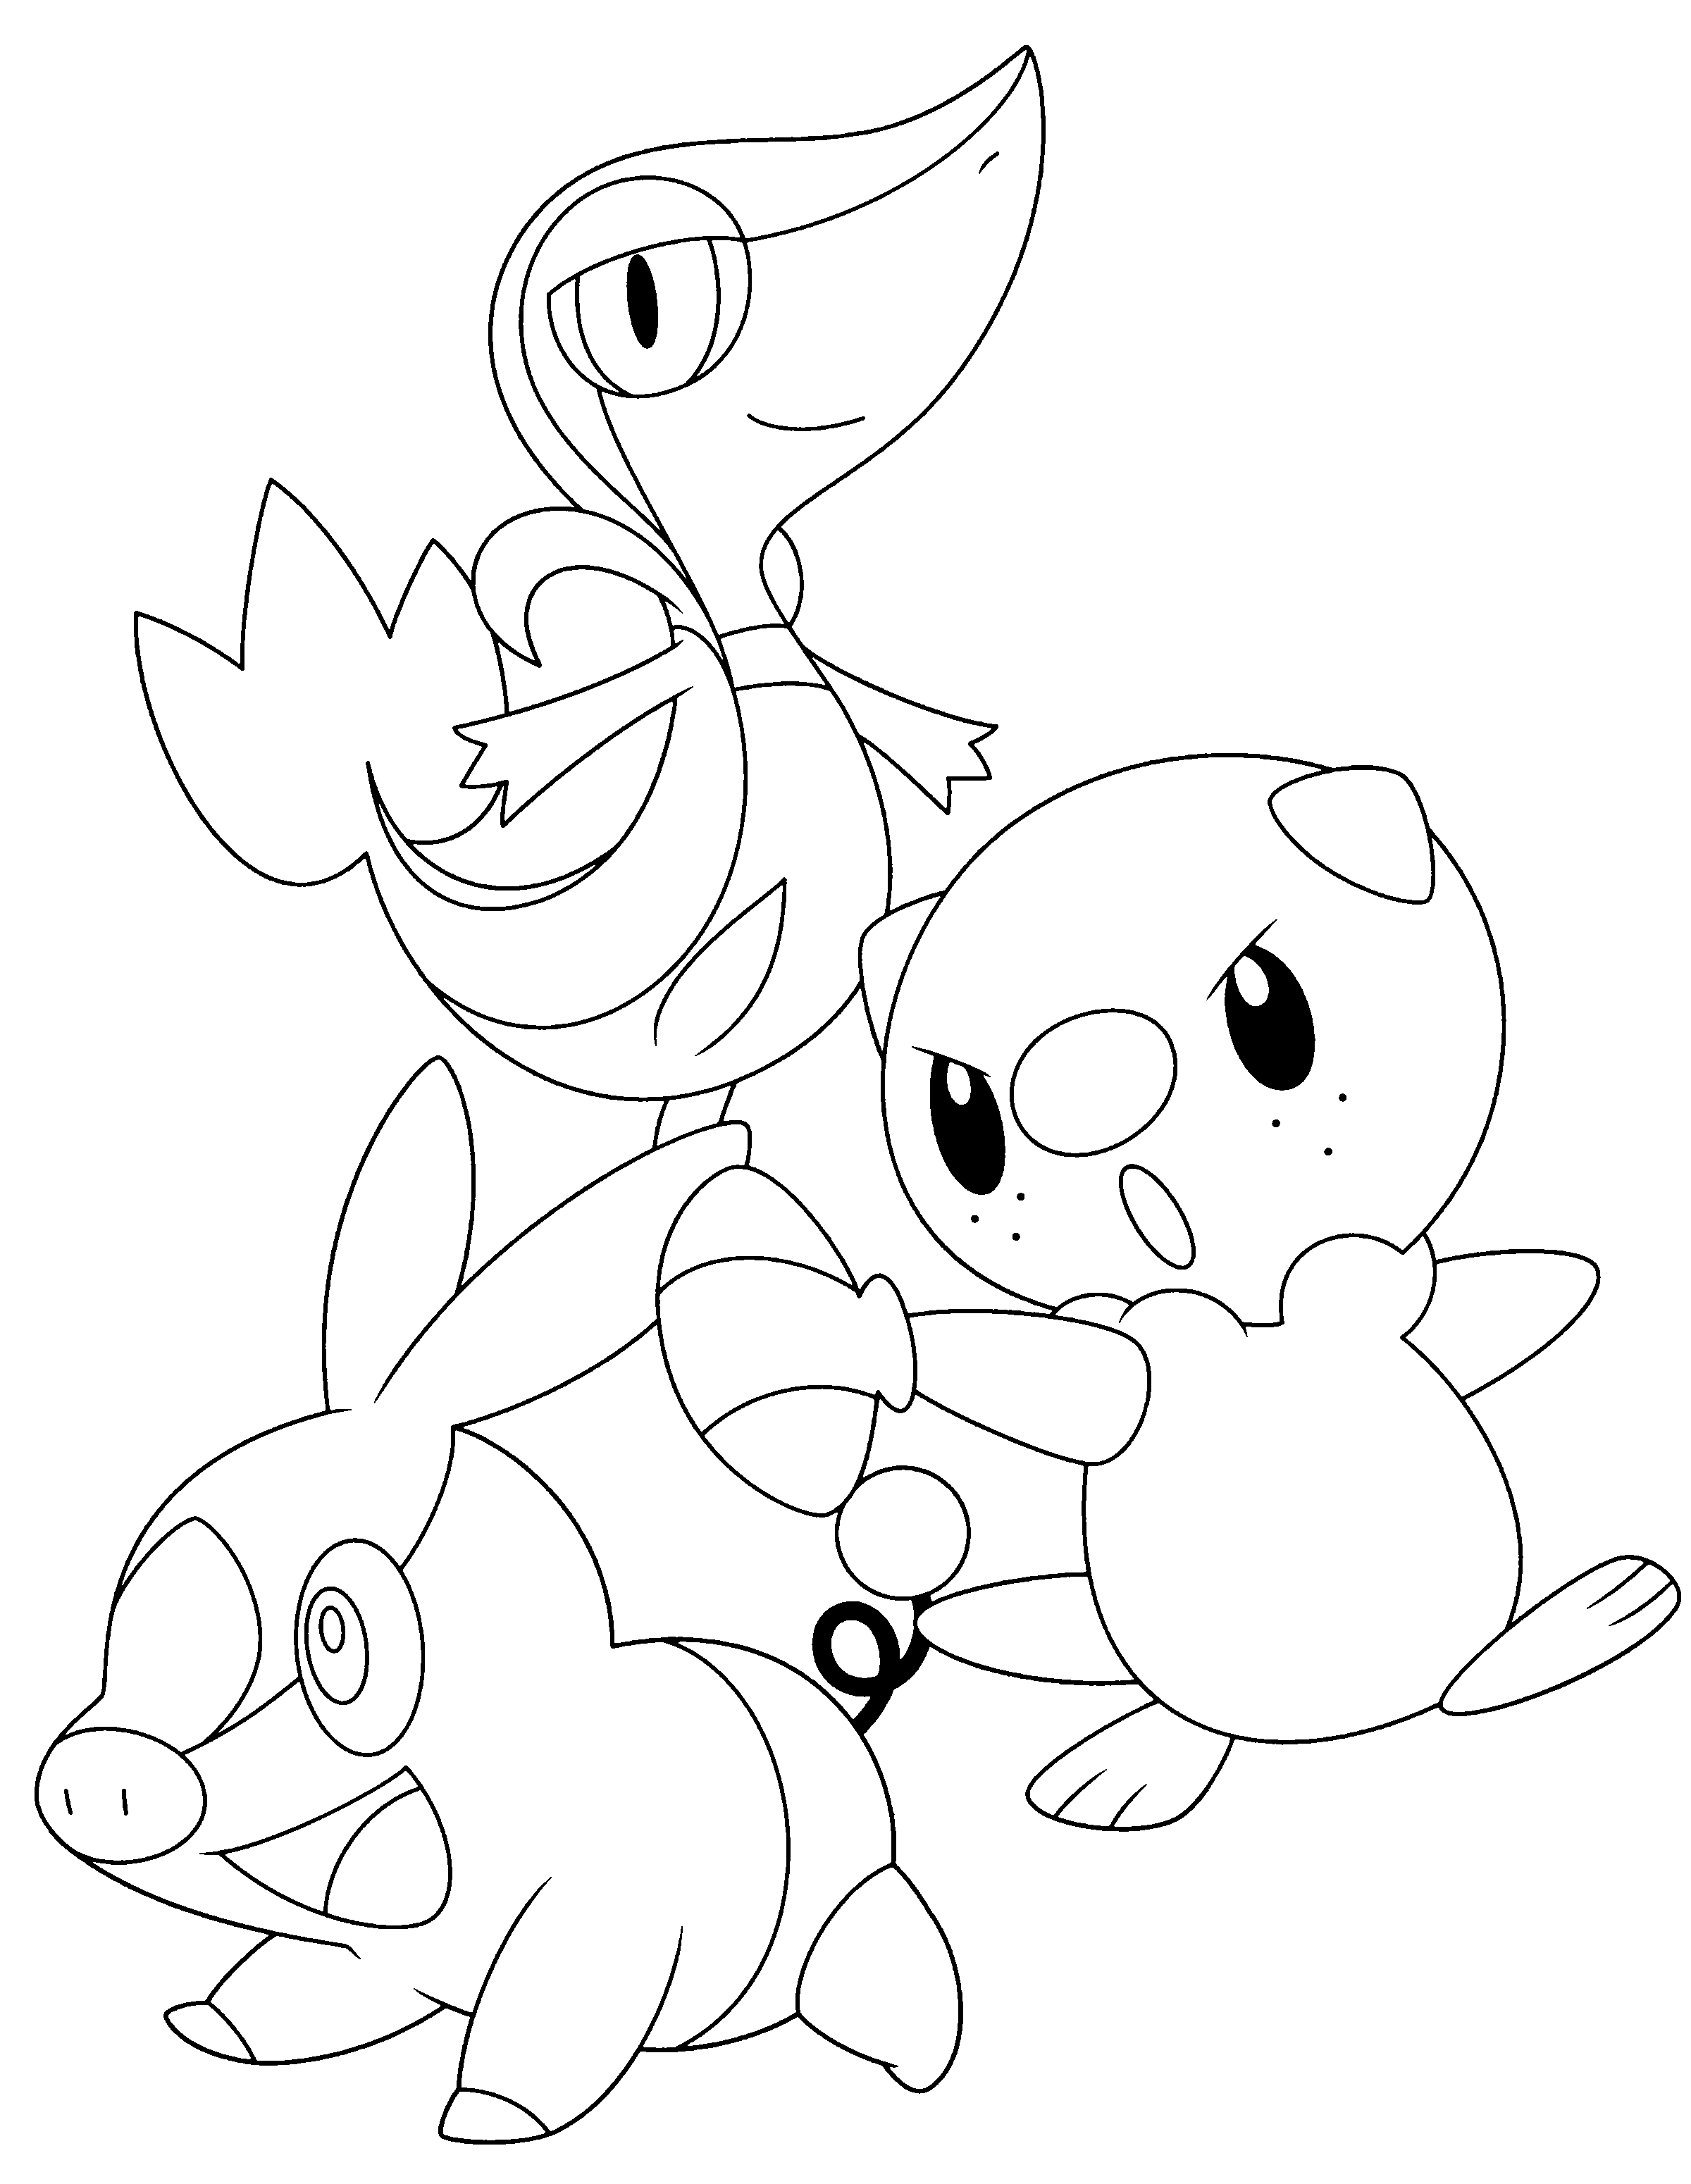 coloring pages pokemon oshawott,snivy,and tepig - Google ...